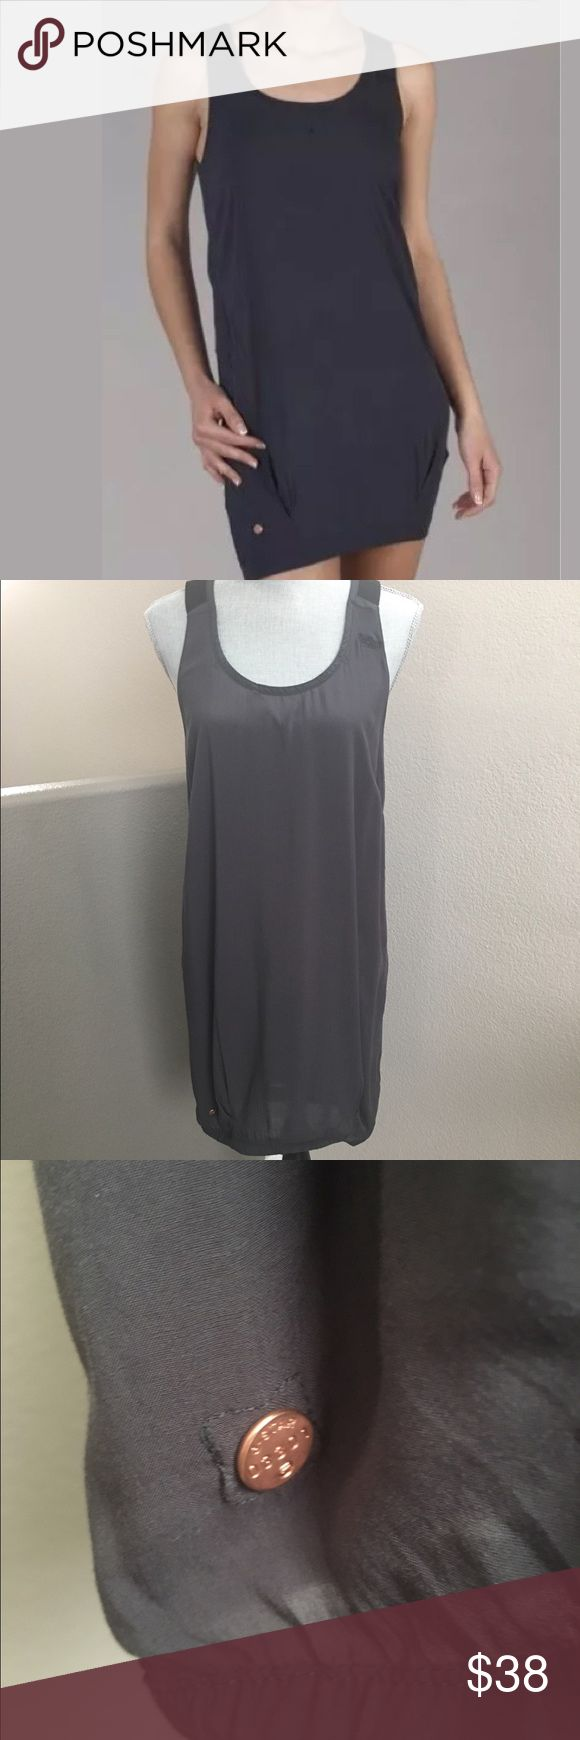 G Star Raw Bando Dandy Charcoal Grey Dress M Excellent Condition Size M Cute with leggings too G Star Raw Dresses Mini